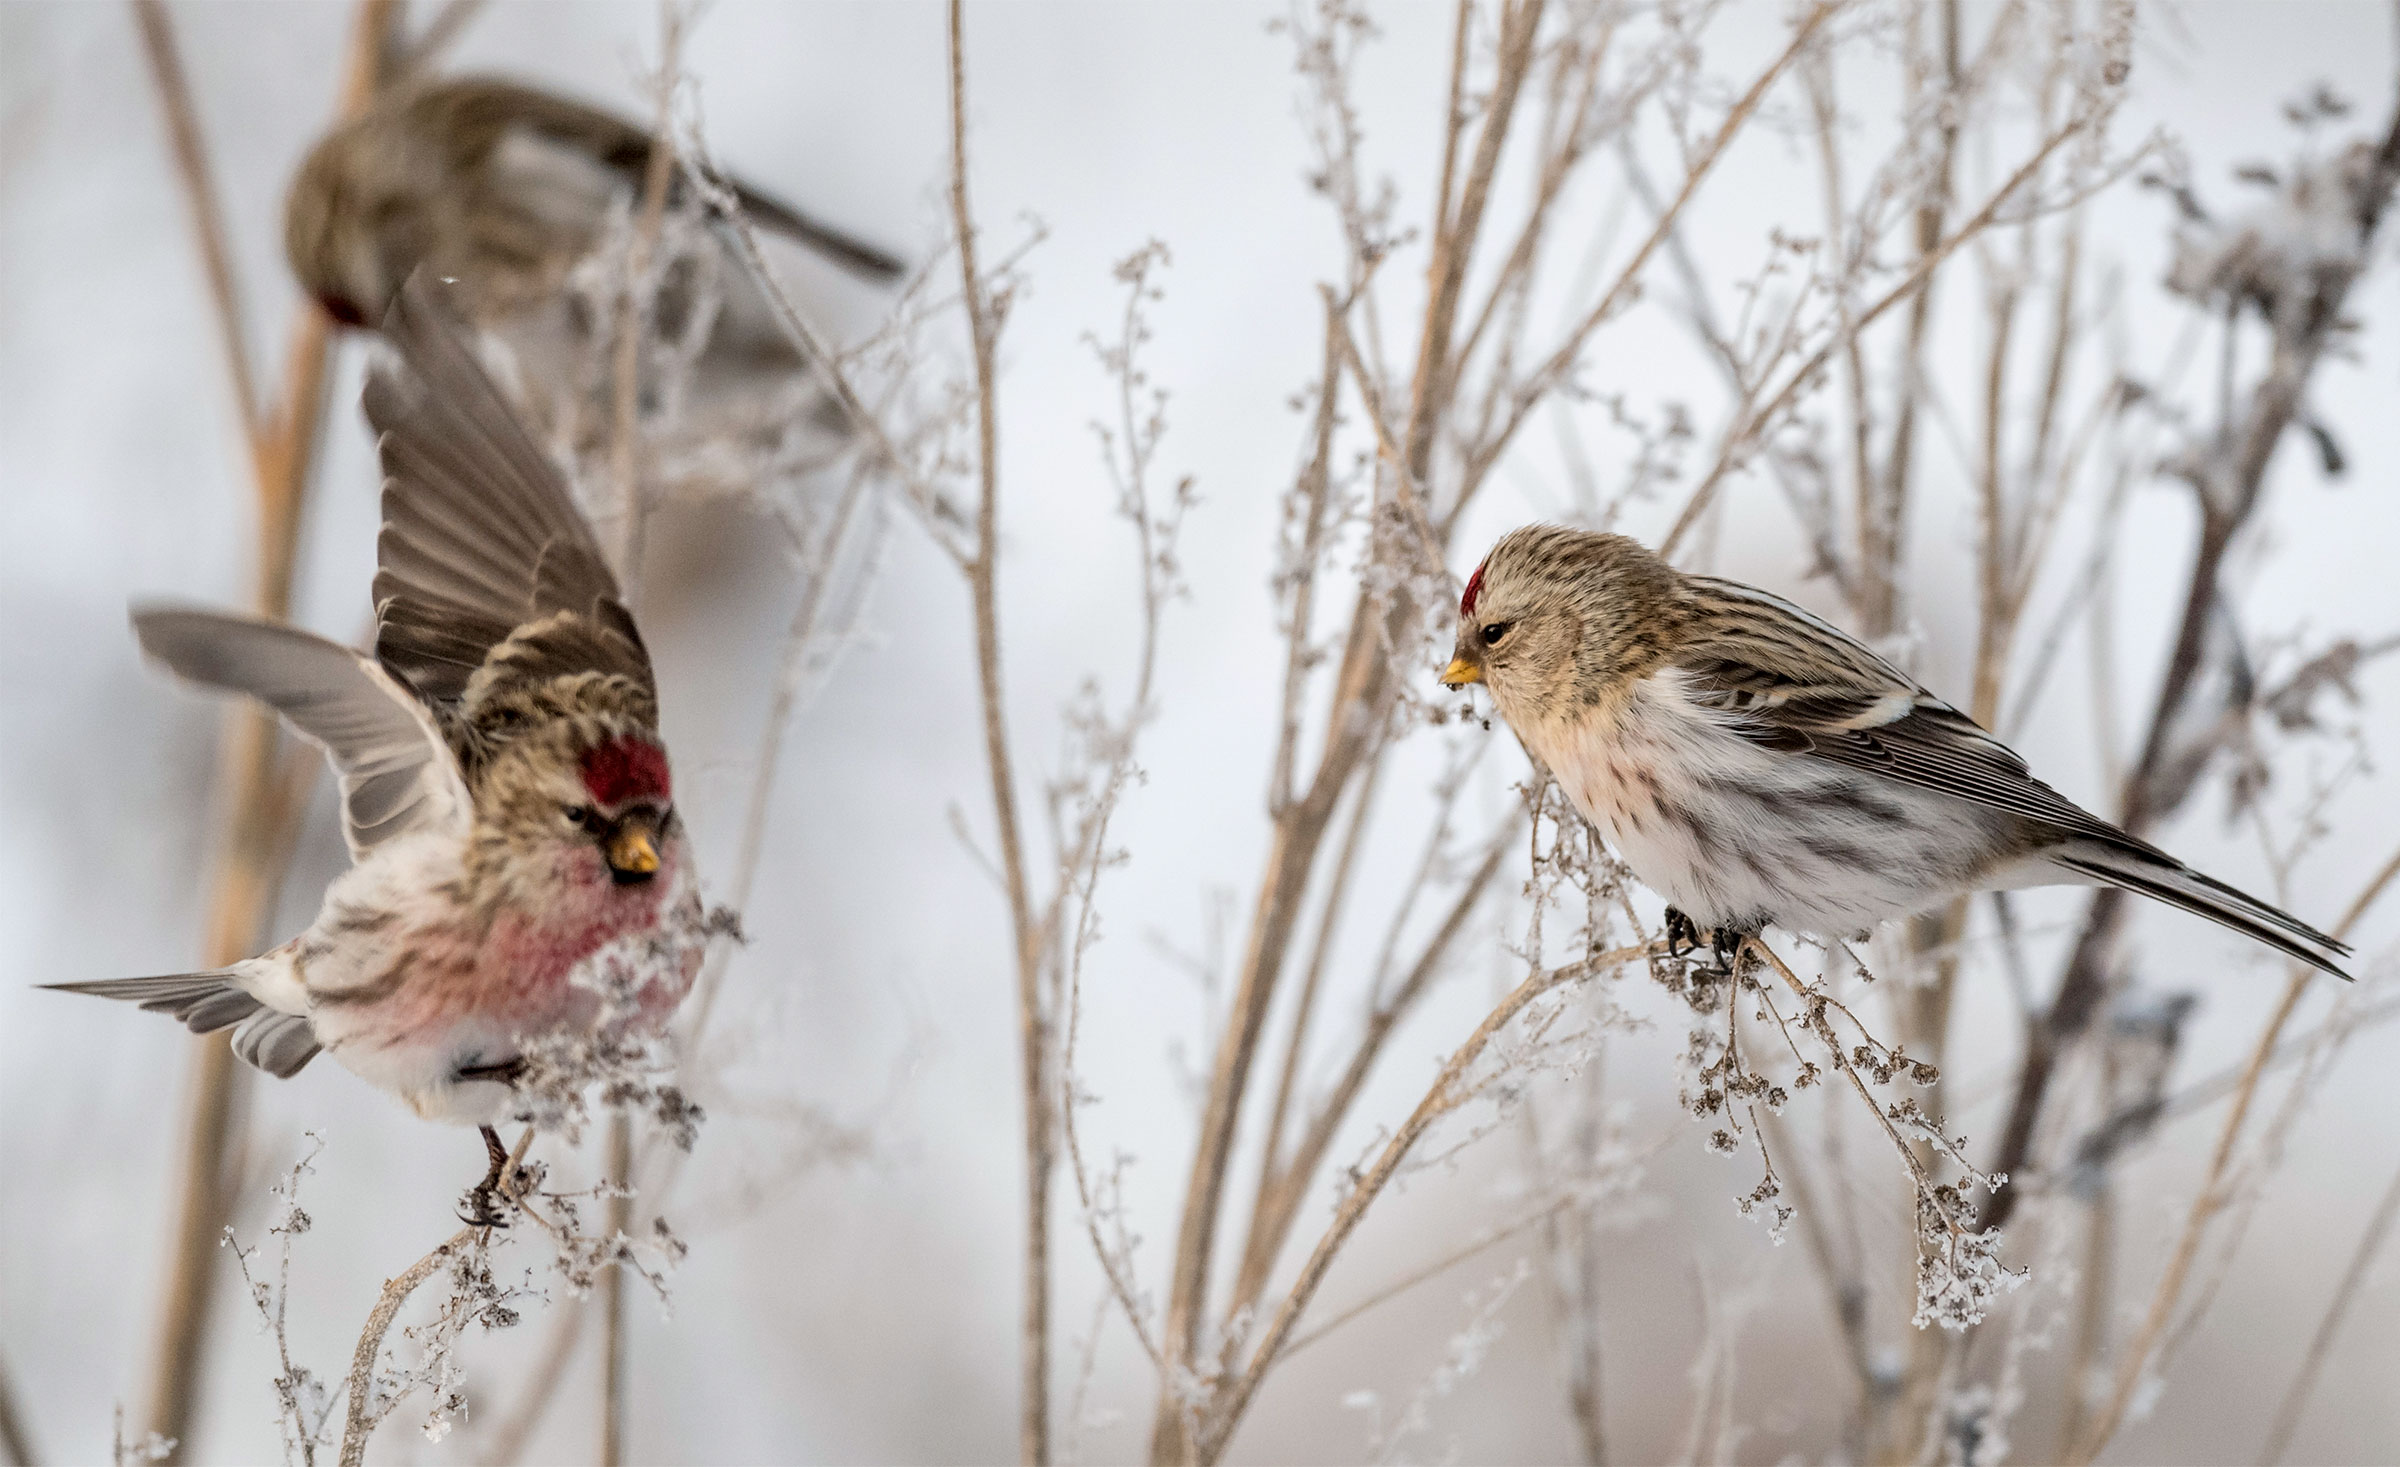 The science of bird classification isn't precise. For example, Common Redpolls (left) and Hoary Redpolls (right) are genetically almost identical—yet official committees have ruled that they remain separate species. Jussi Murtosaari/Minden Pictures